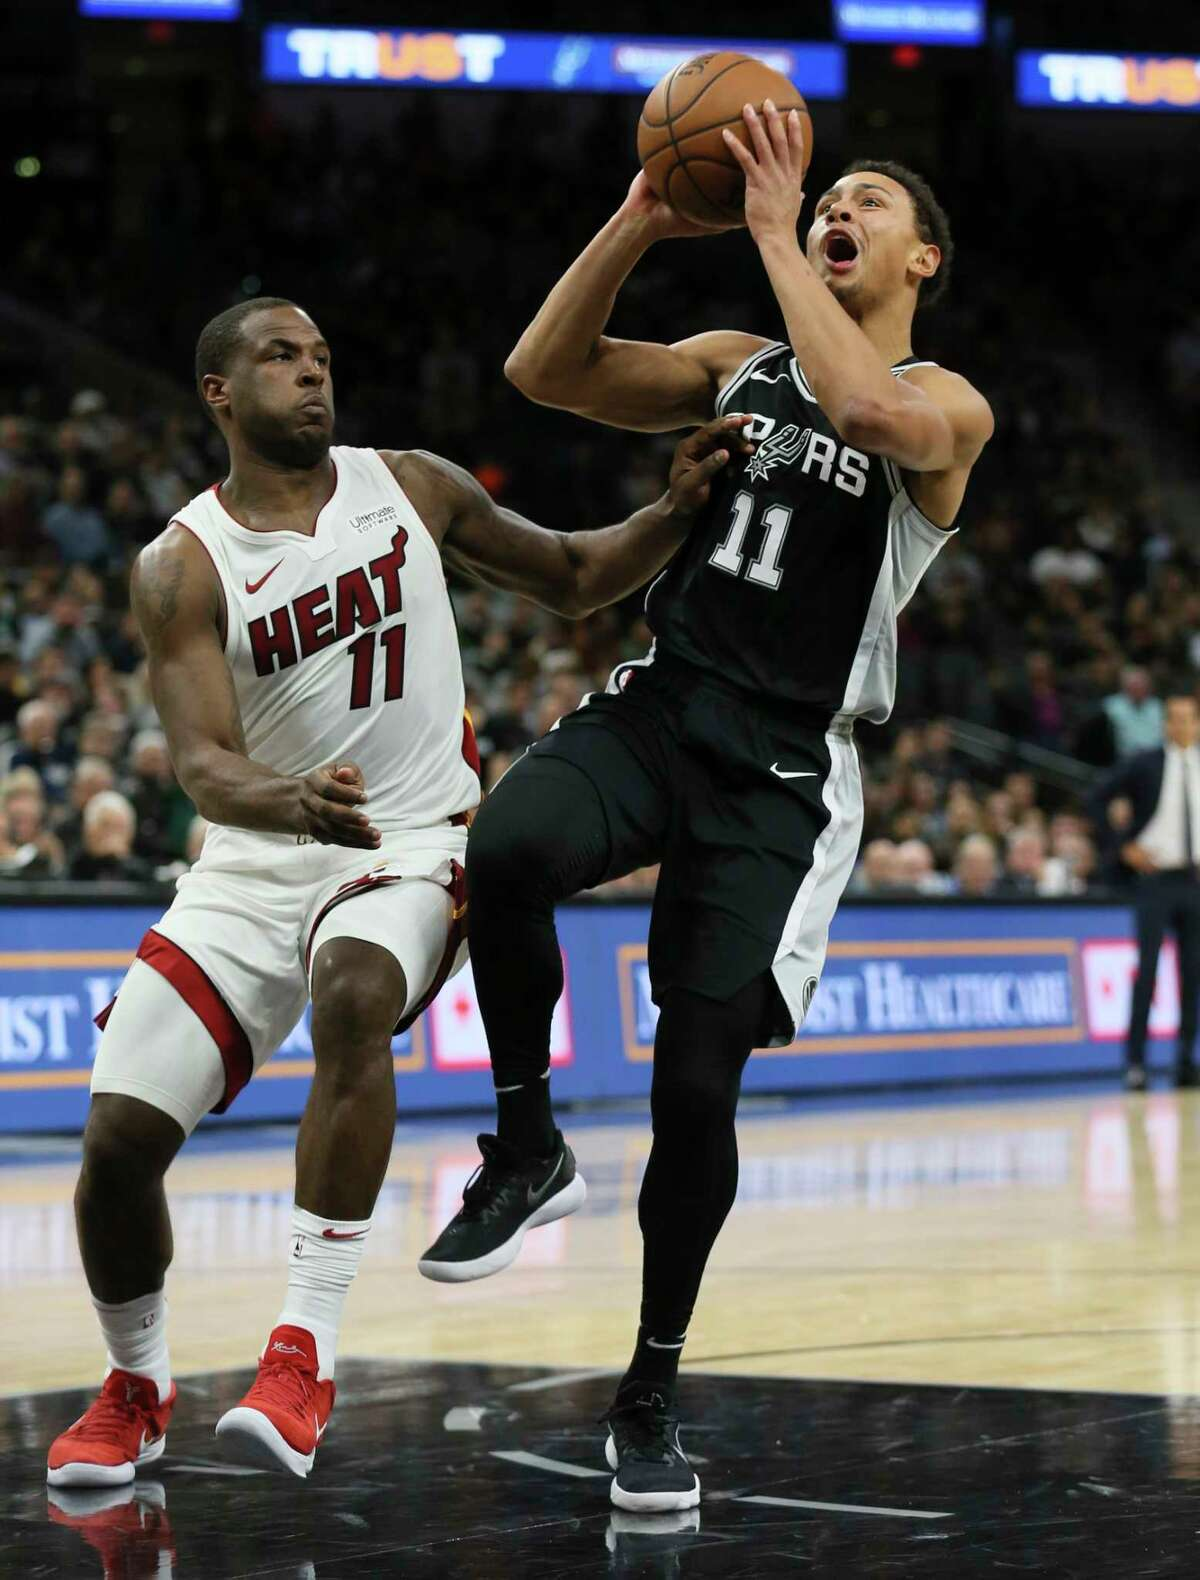 Spurs' Bryn Forbes (11) draws contact as he score against Miami Heat's Dion Waiters (11) at the AT&T Center on Wednesday, Dec. 6, 2017.